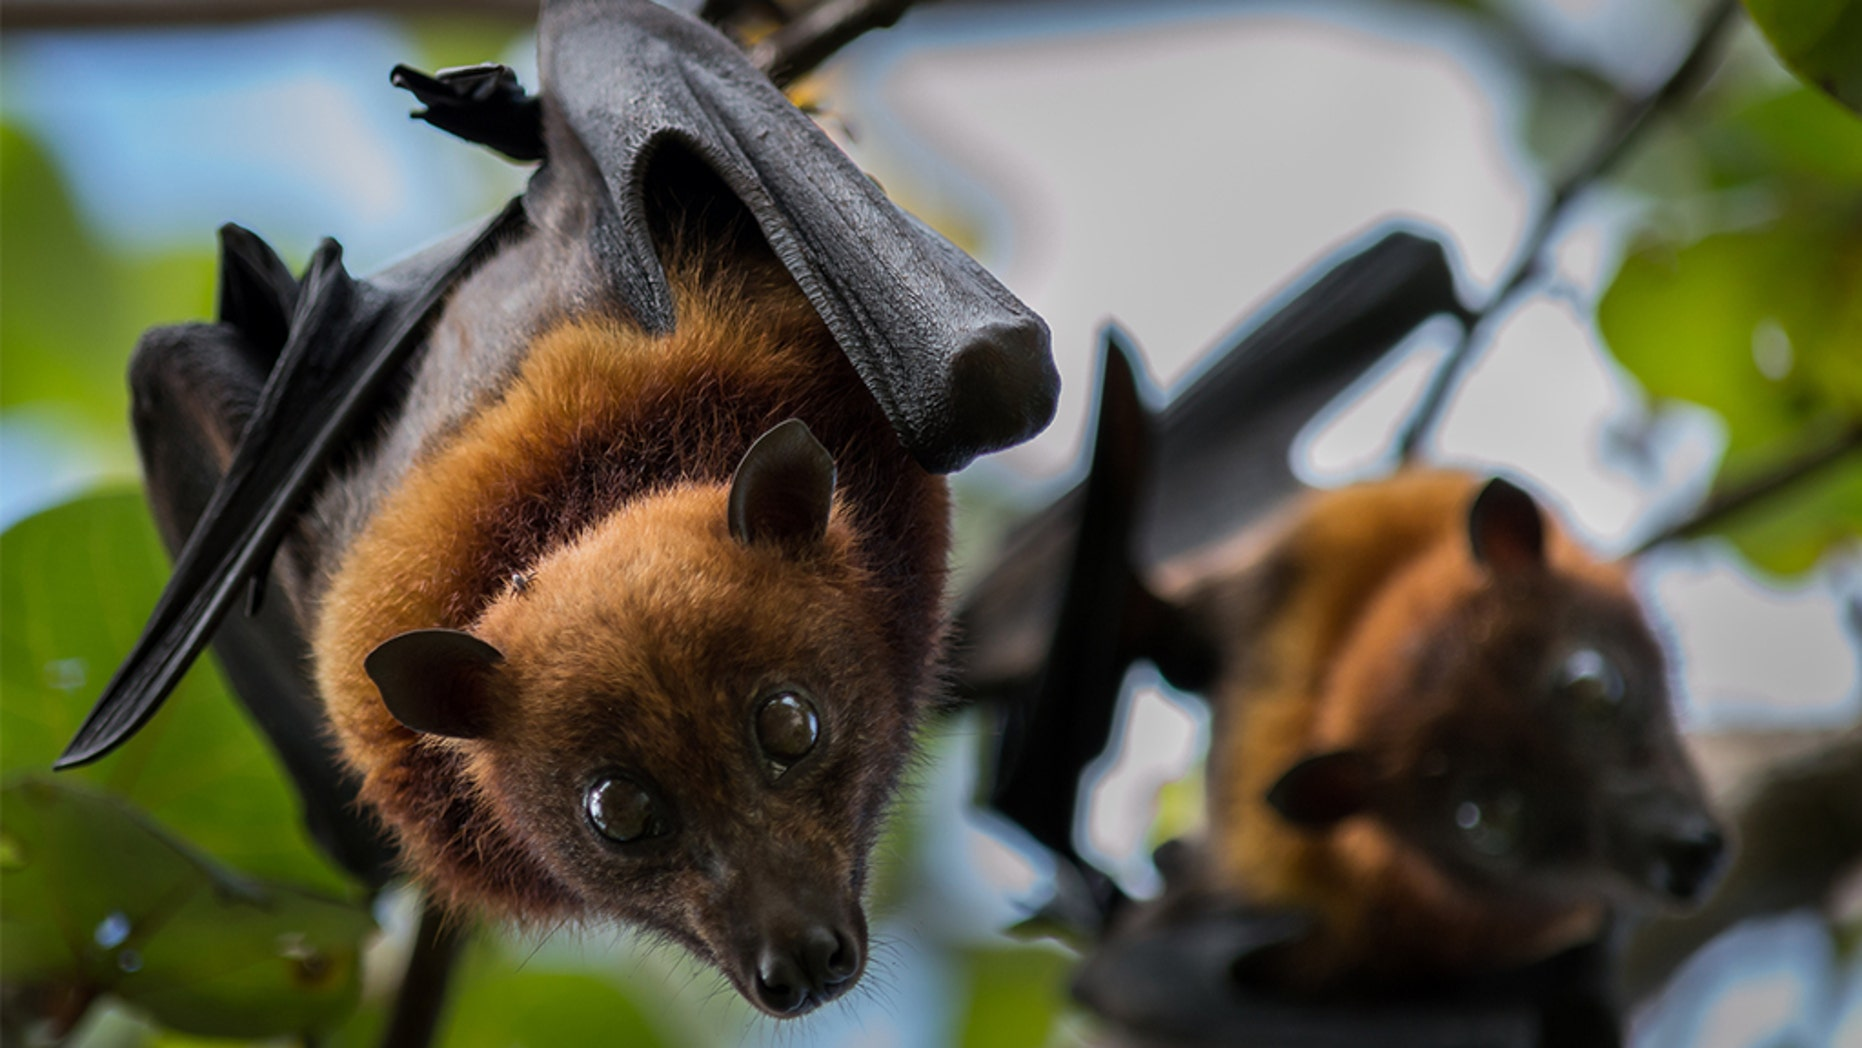 The Měnglà pathogen was found in fruit bats in China, and potentially could taint humans and other animals, scientists have said. (iStock, File)